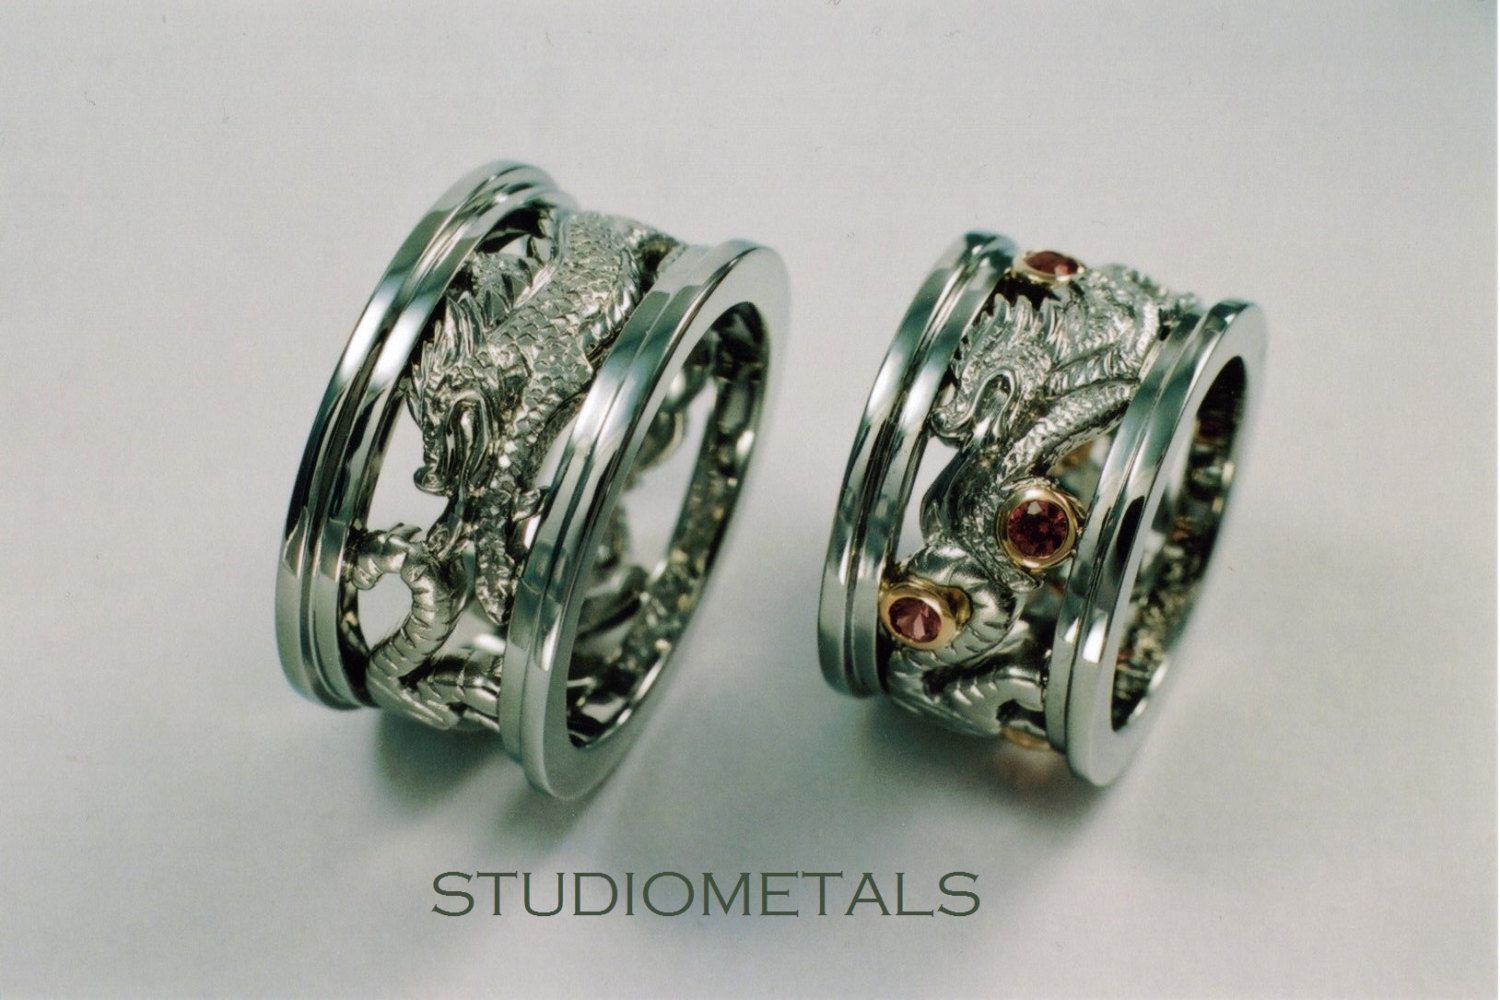 Top Chinese Wedding Ring With Request A Custom Order And Have Something Made Just For You